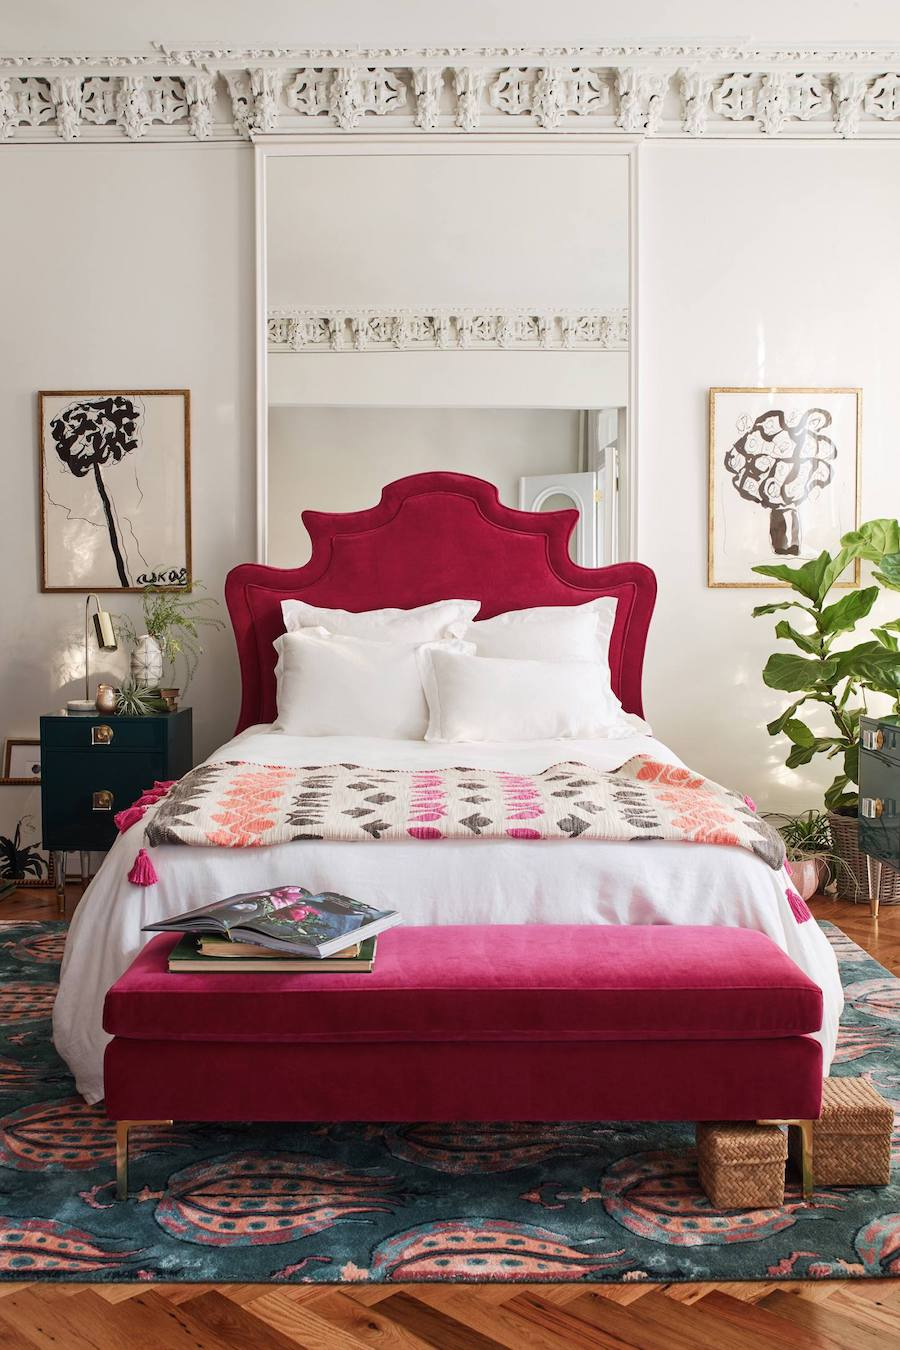 Anthropologie pink velvet headboard